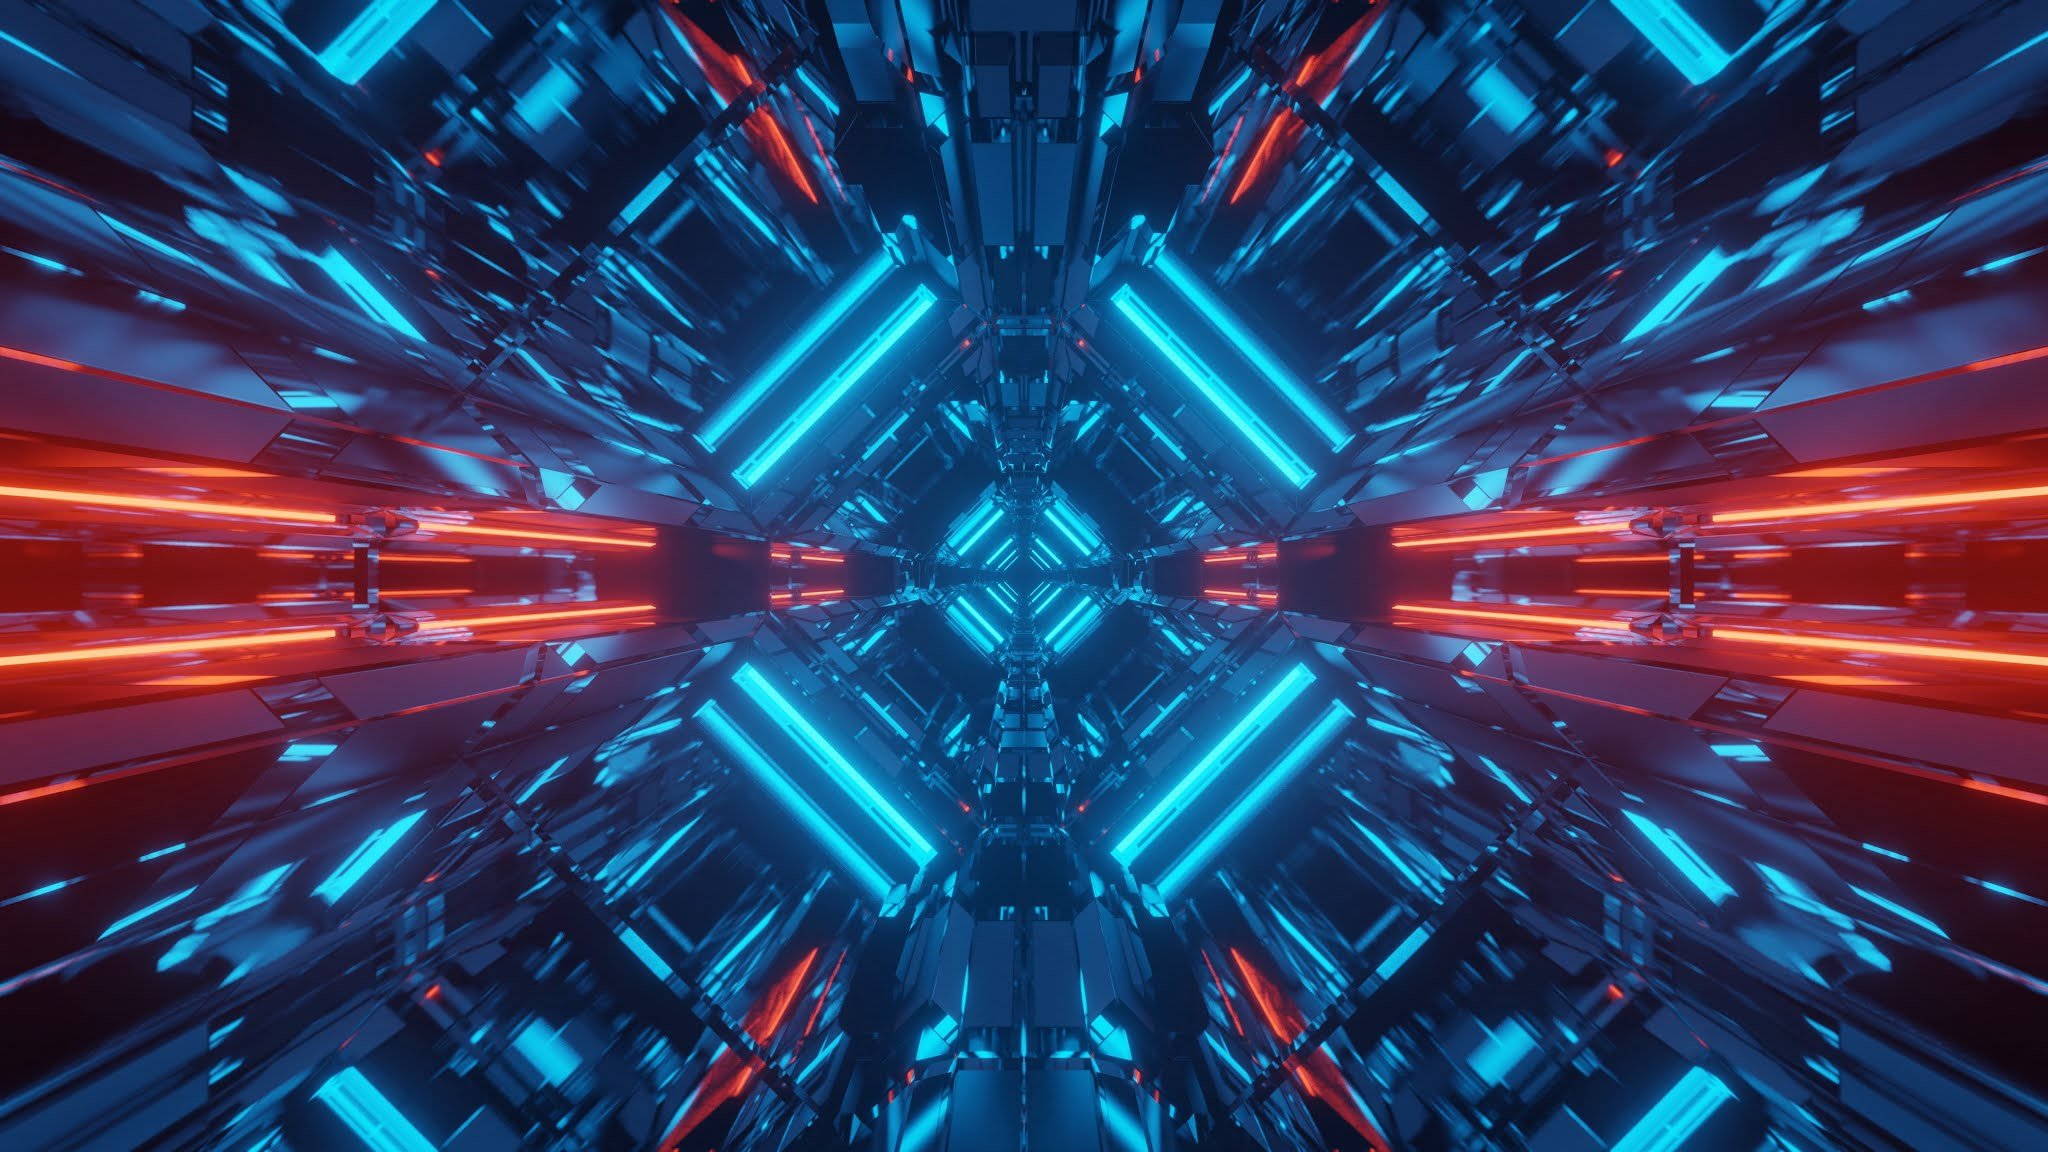 Abstract science fiction futuristic background with red and blue neon lights